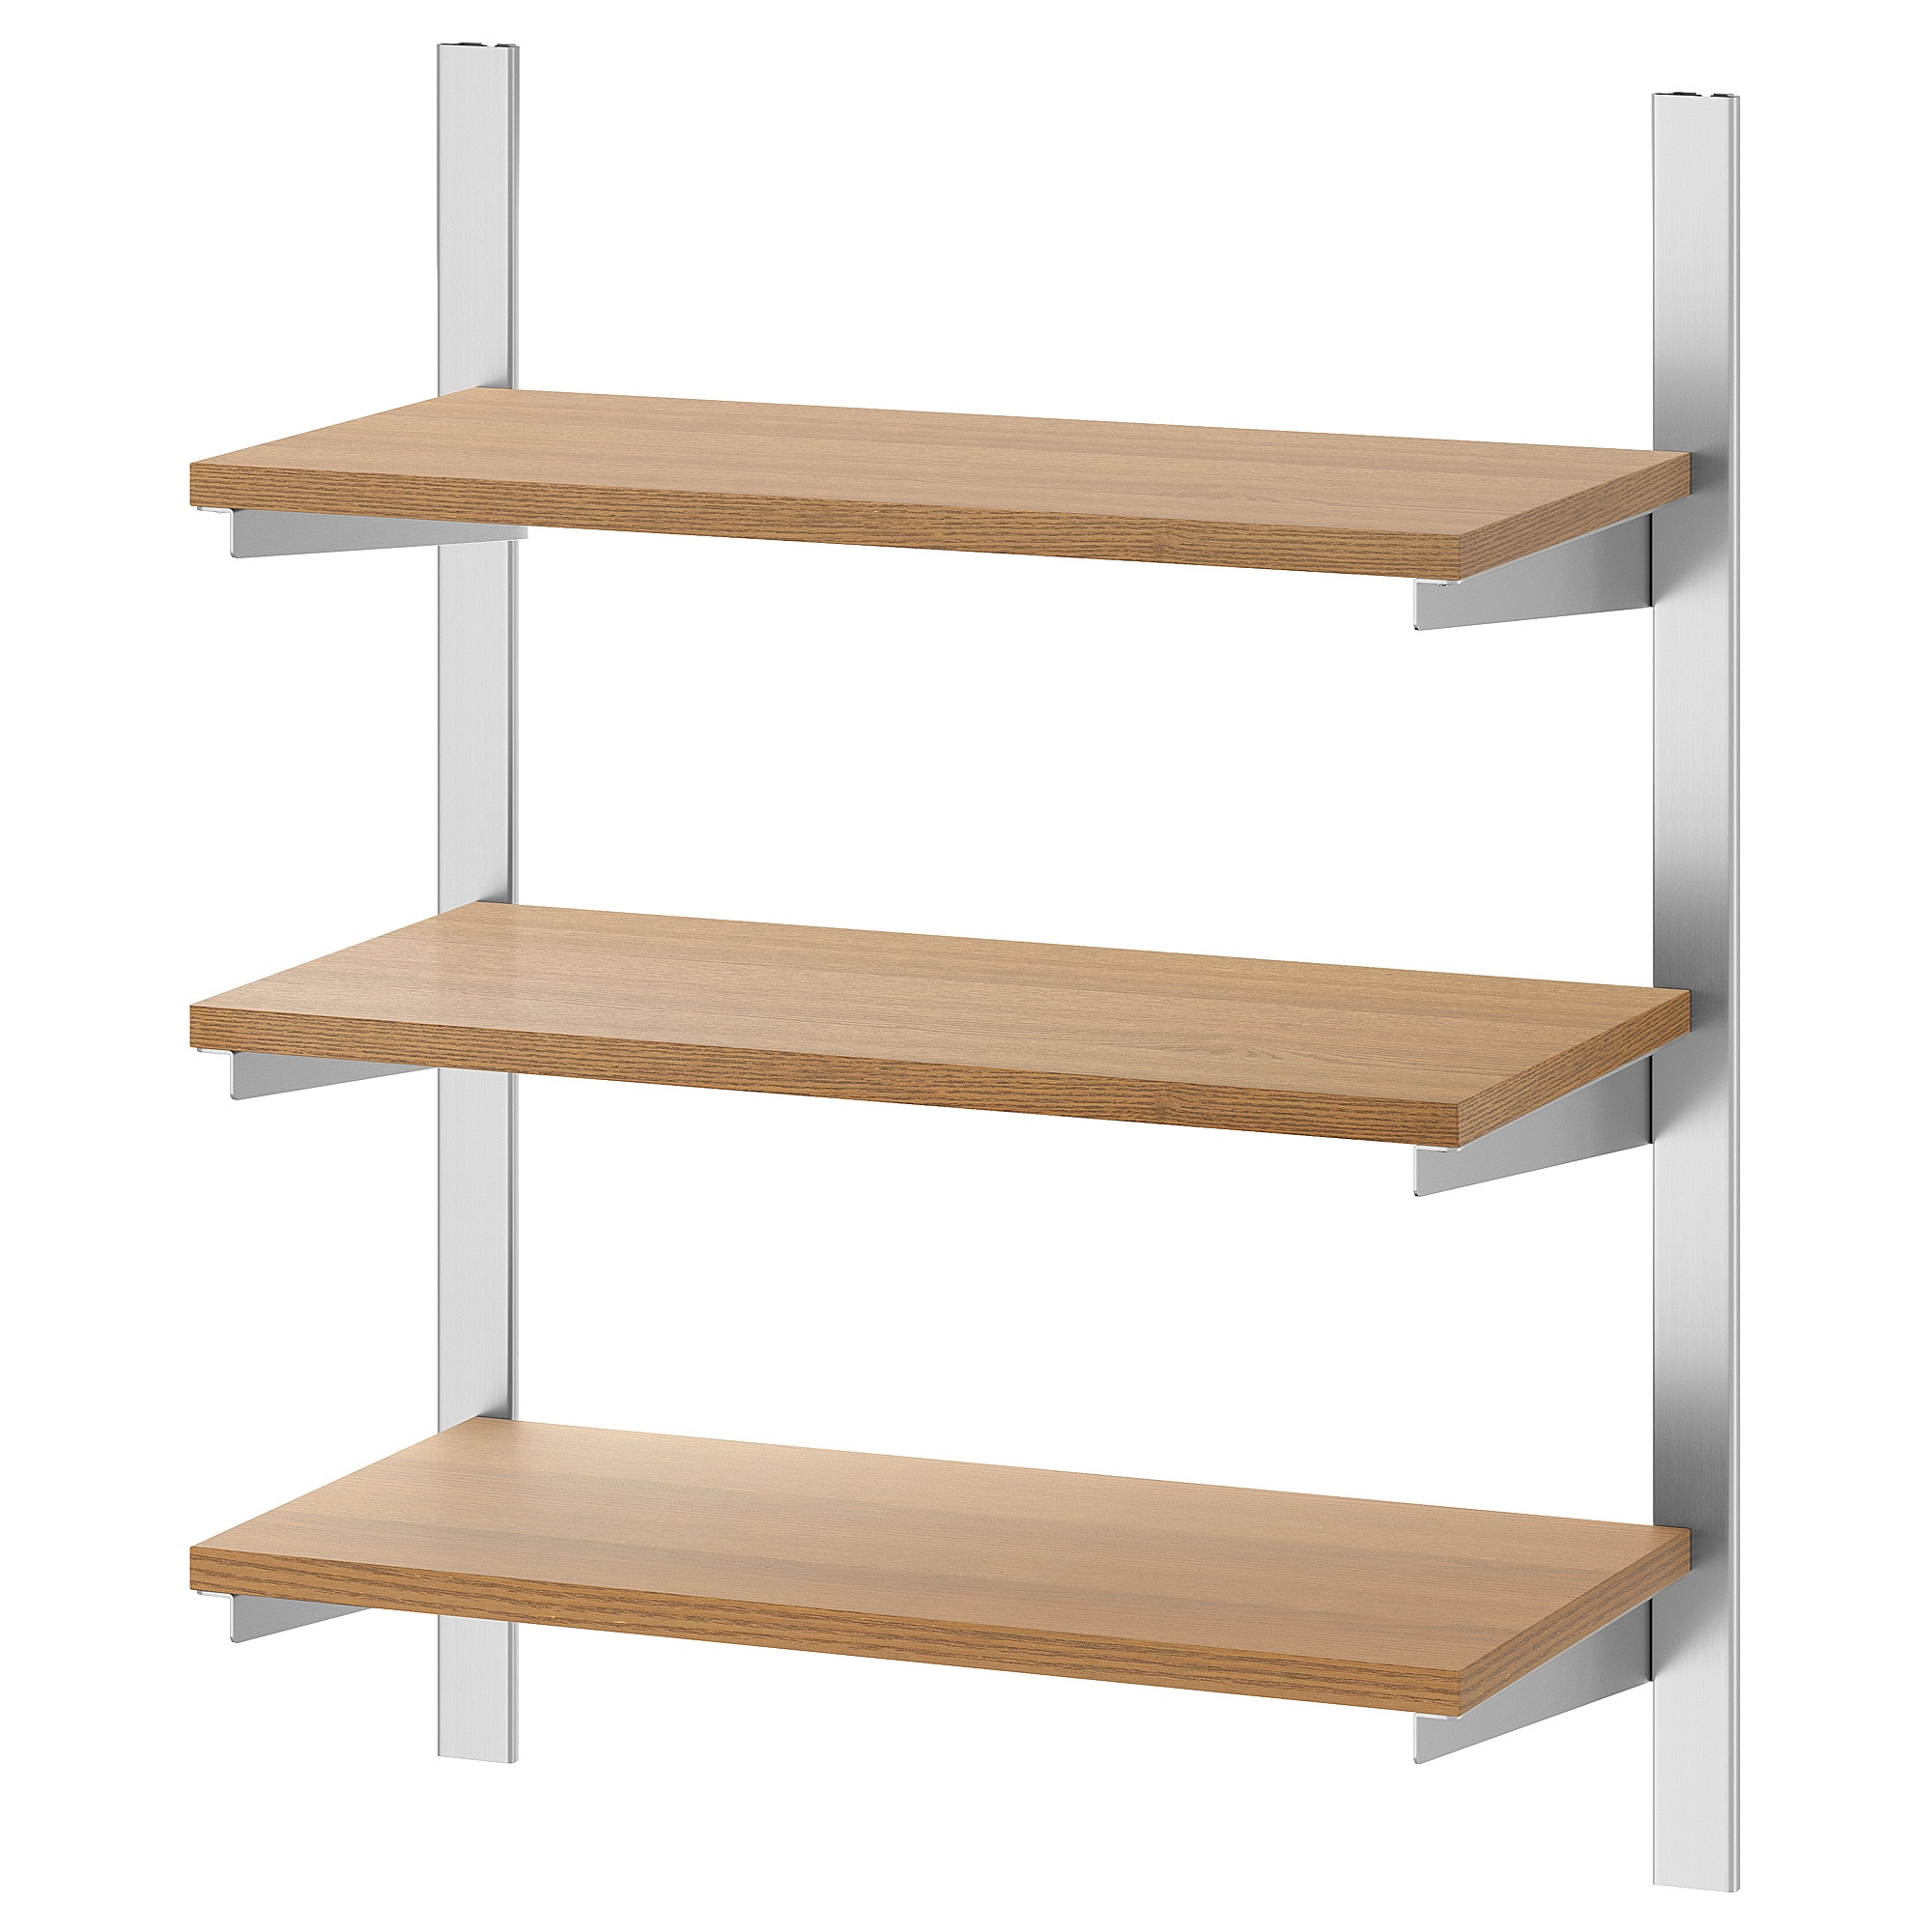 Suspension Rail With Shelves Kungsfors Stainless Steel, Ash